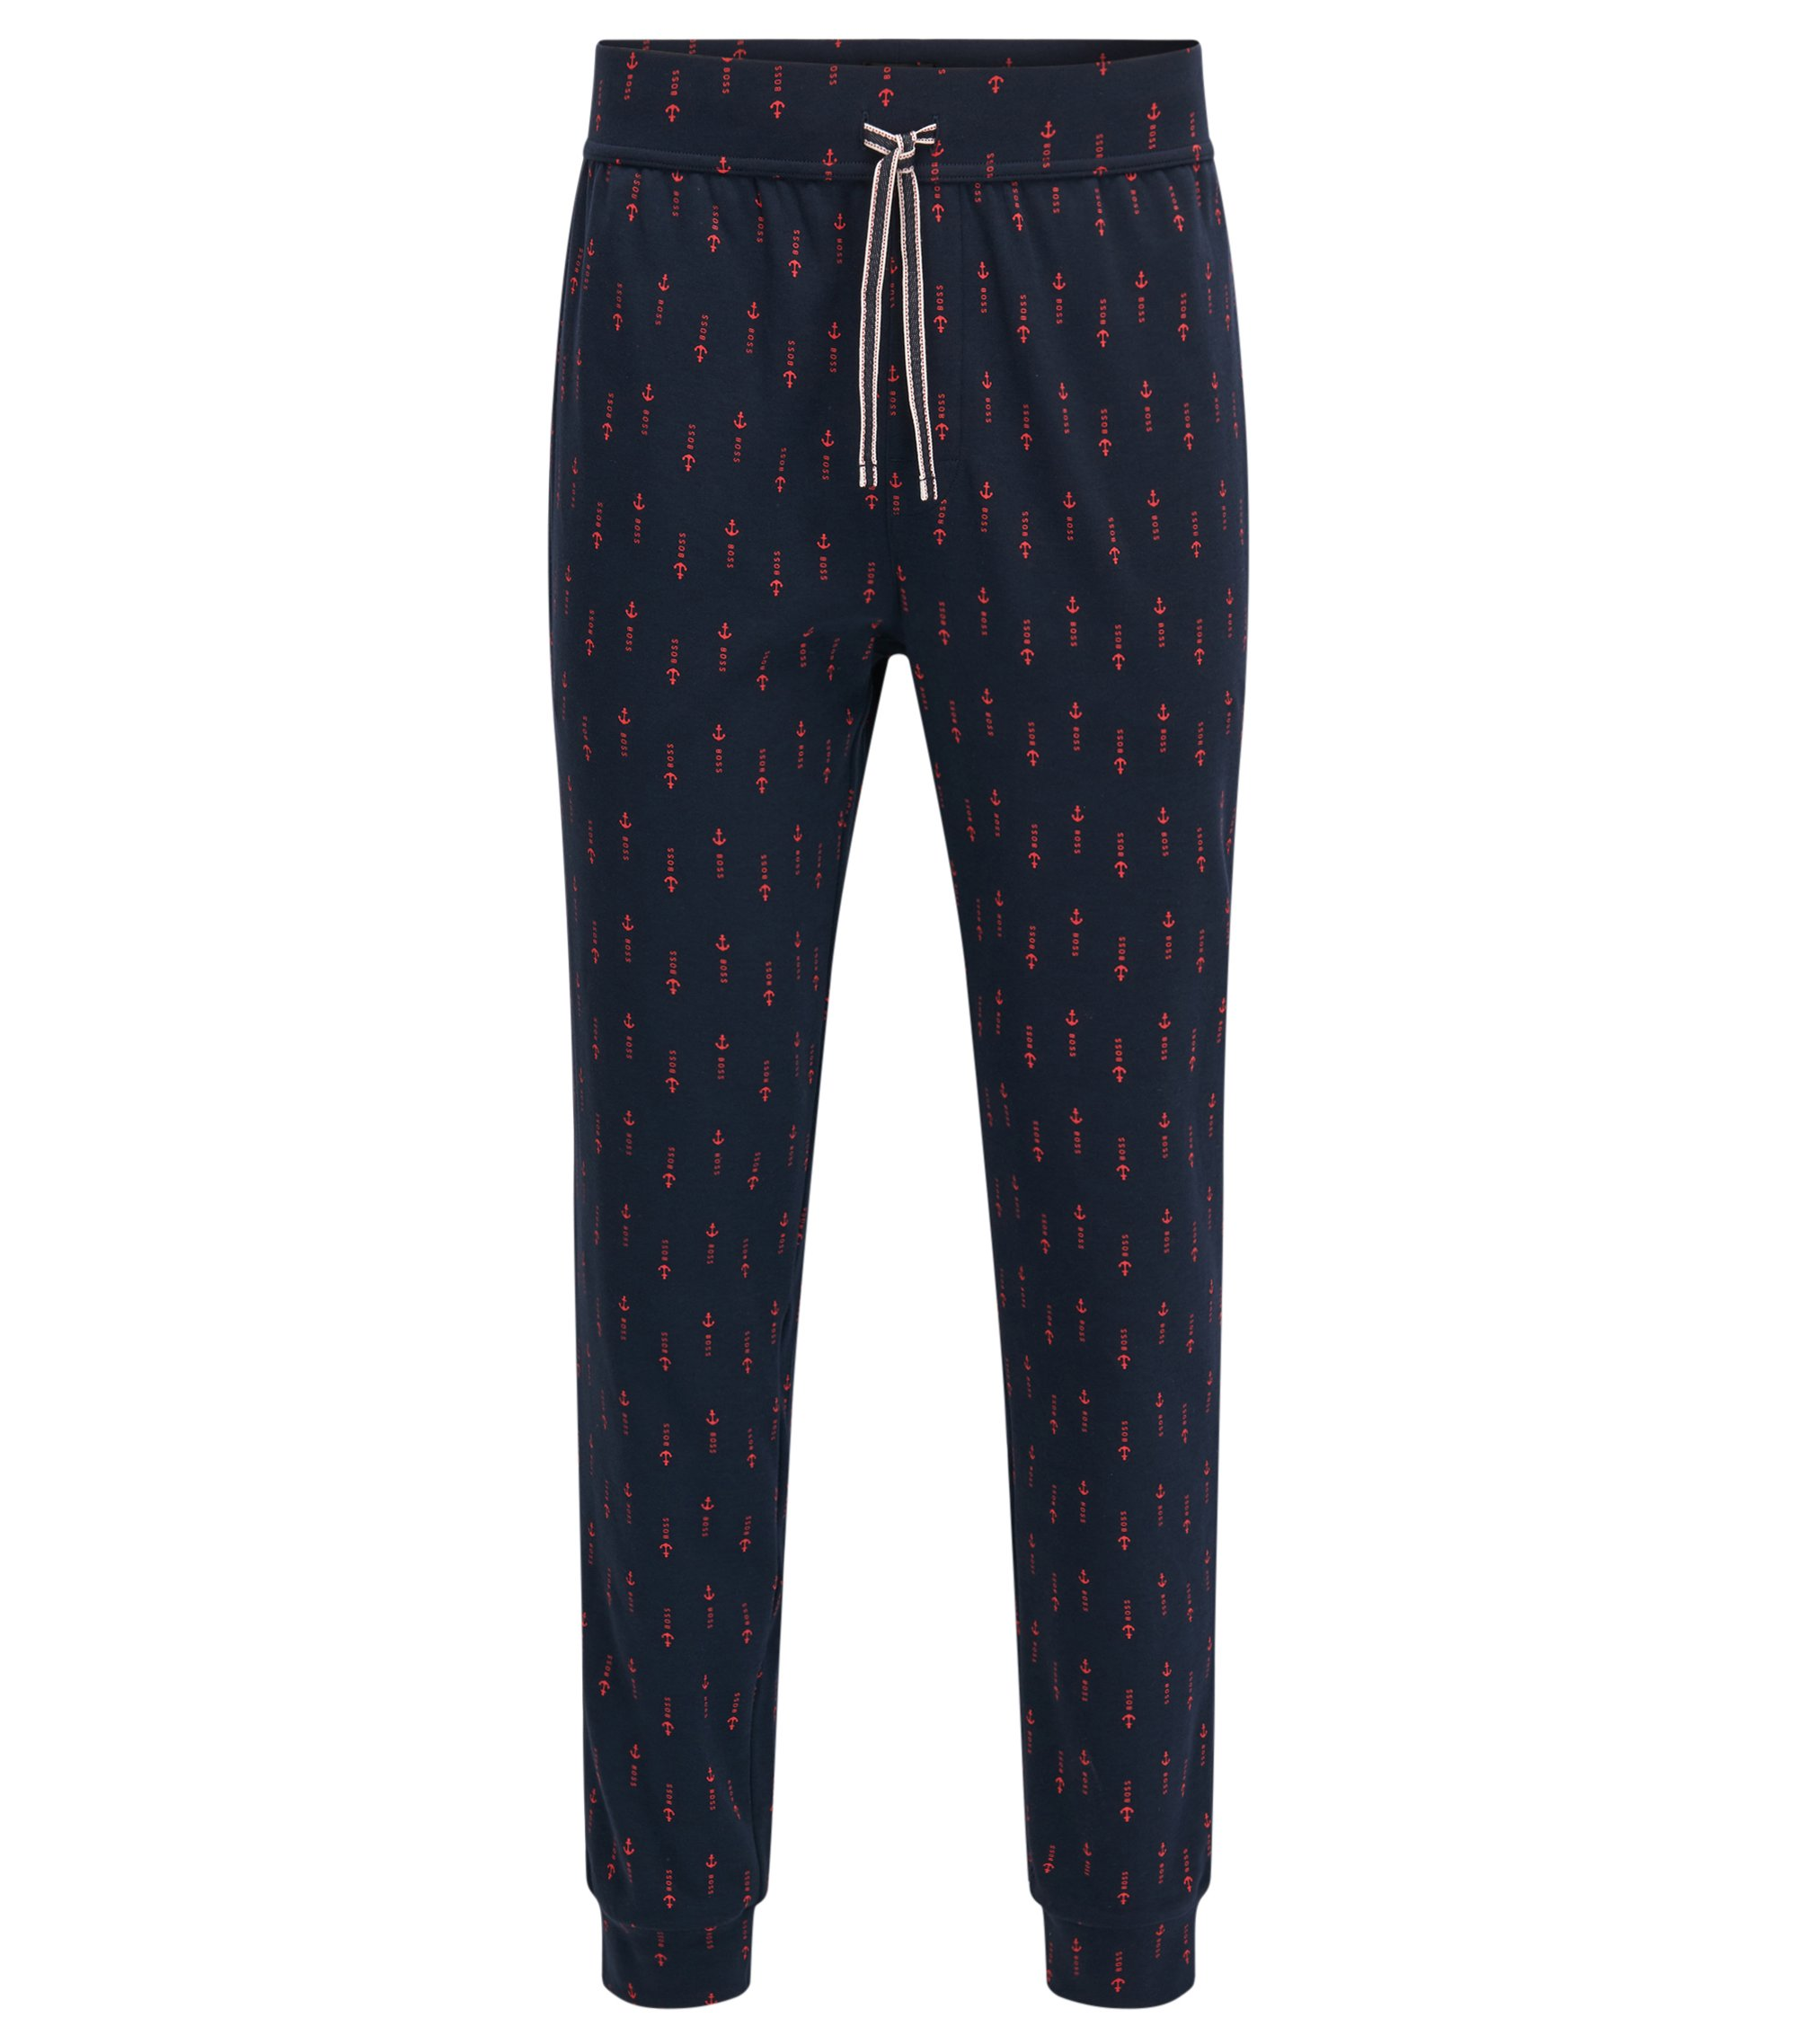 Cuffed pyjama bottoms in printed cotton, Blue